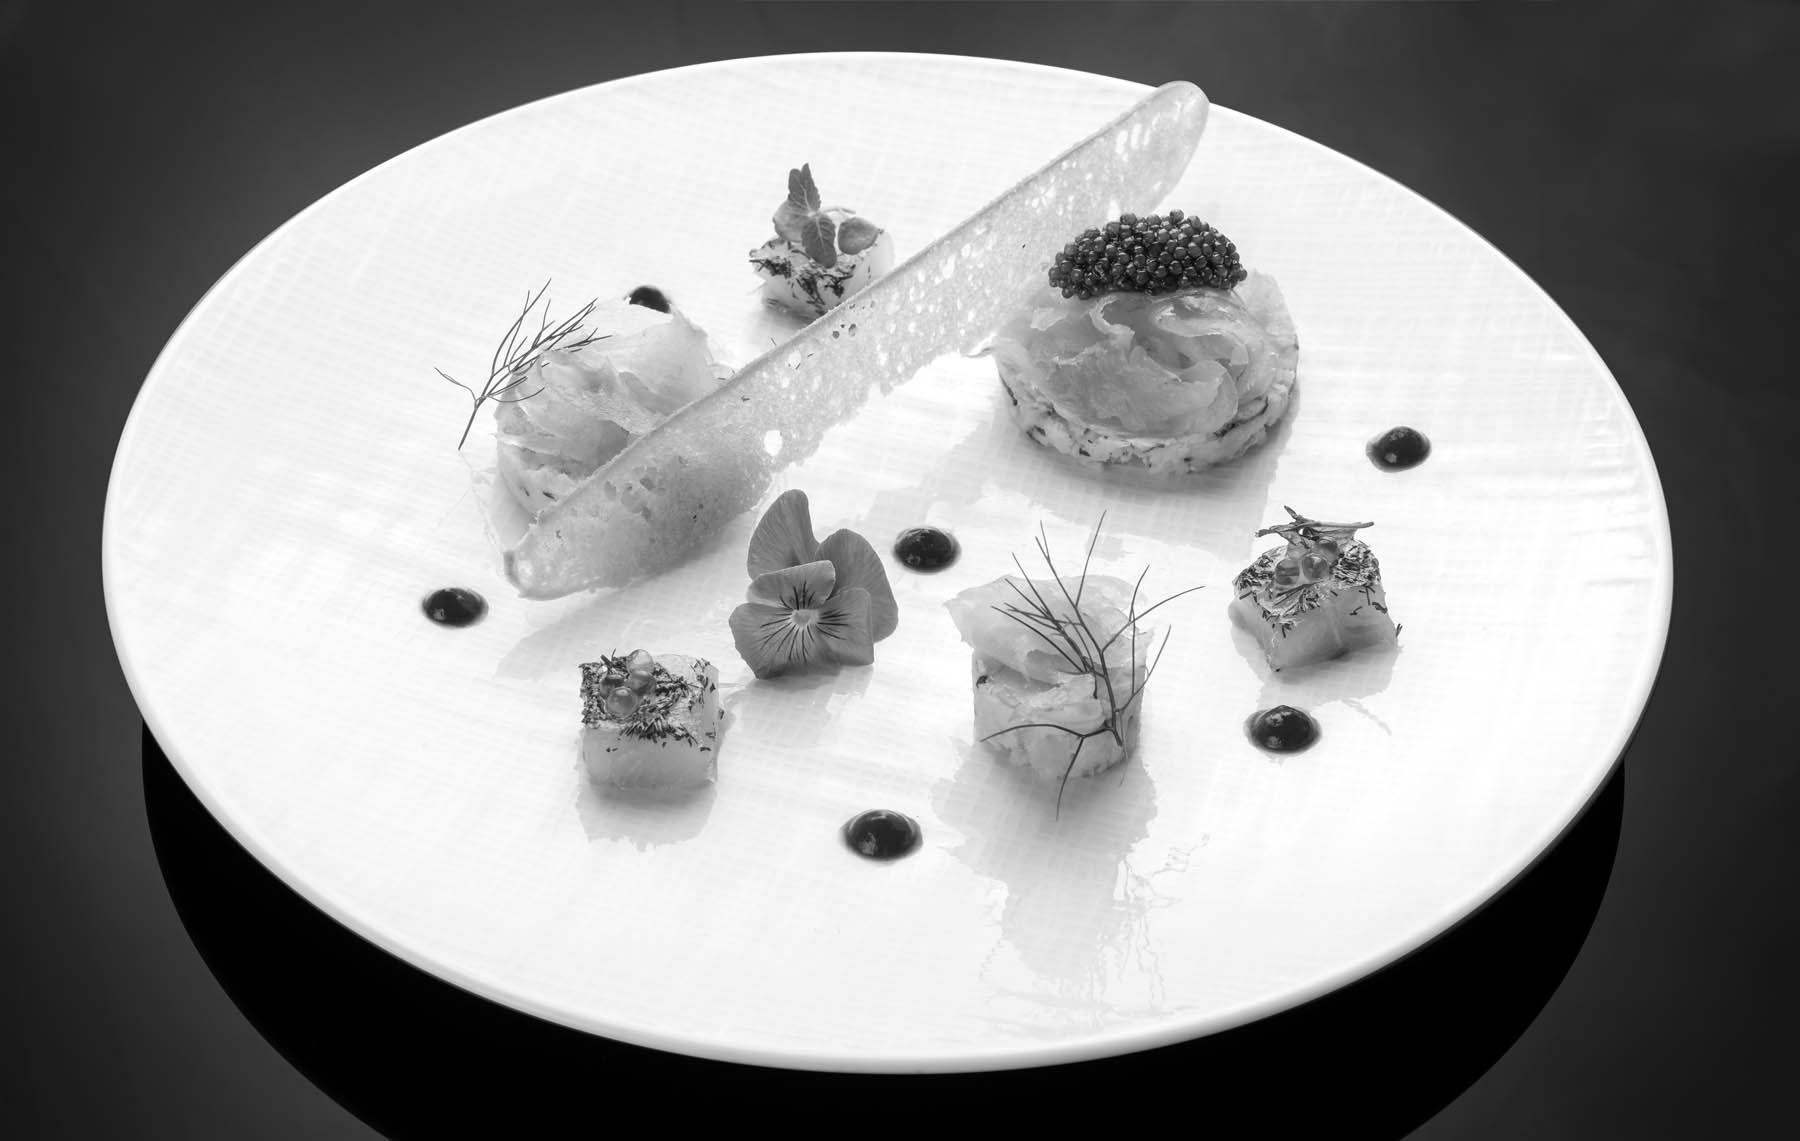 Image newsfeed The Chefs' expertise will be showcased